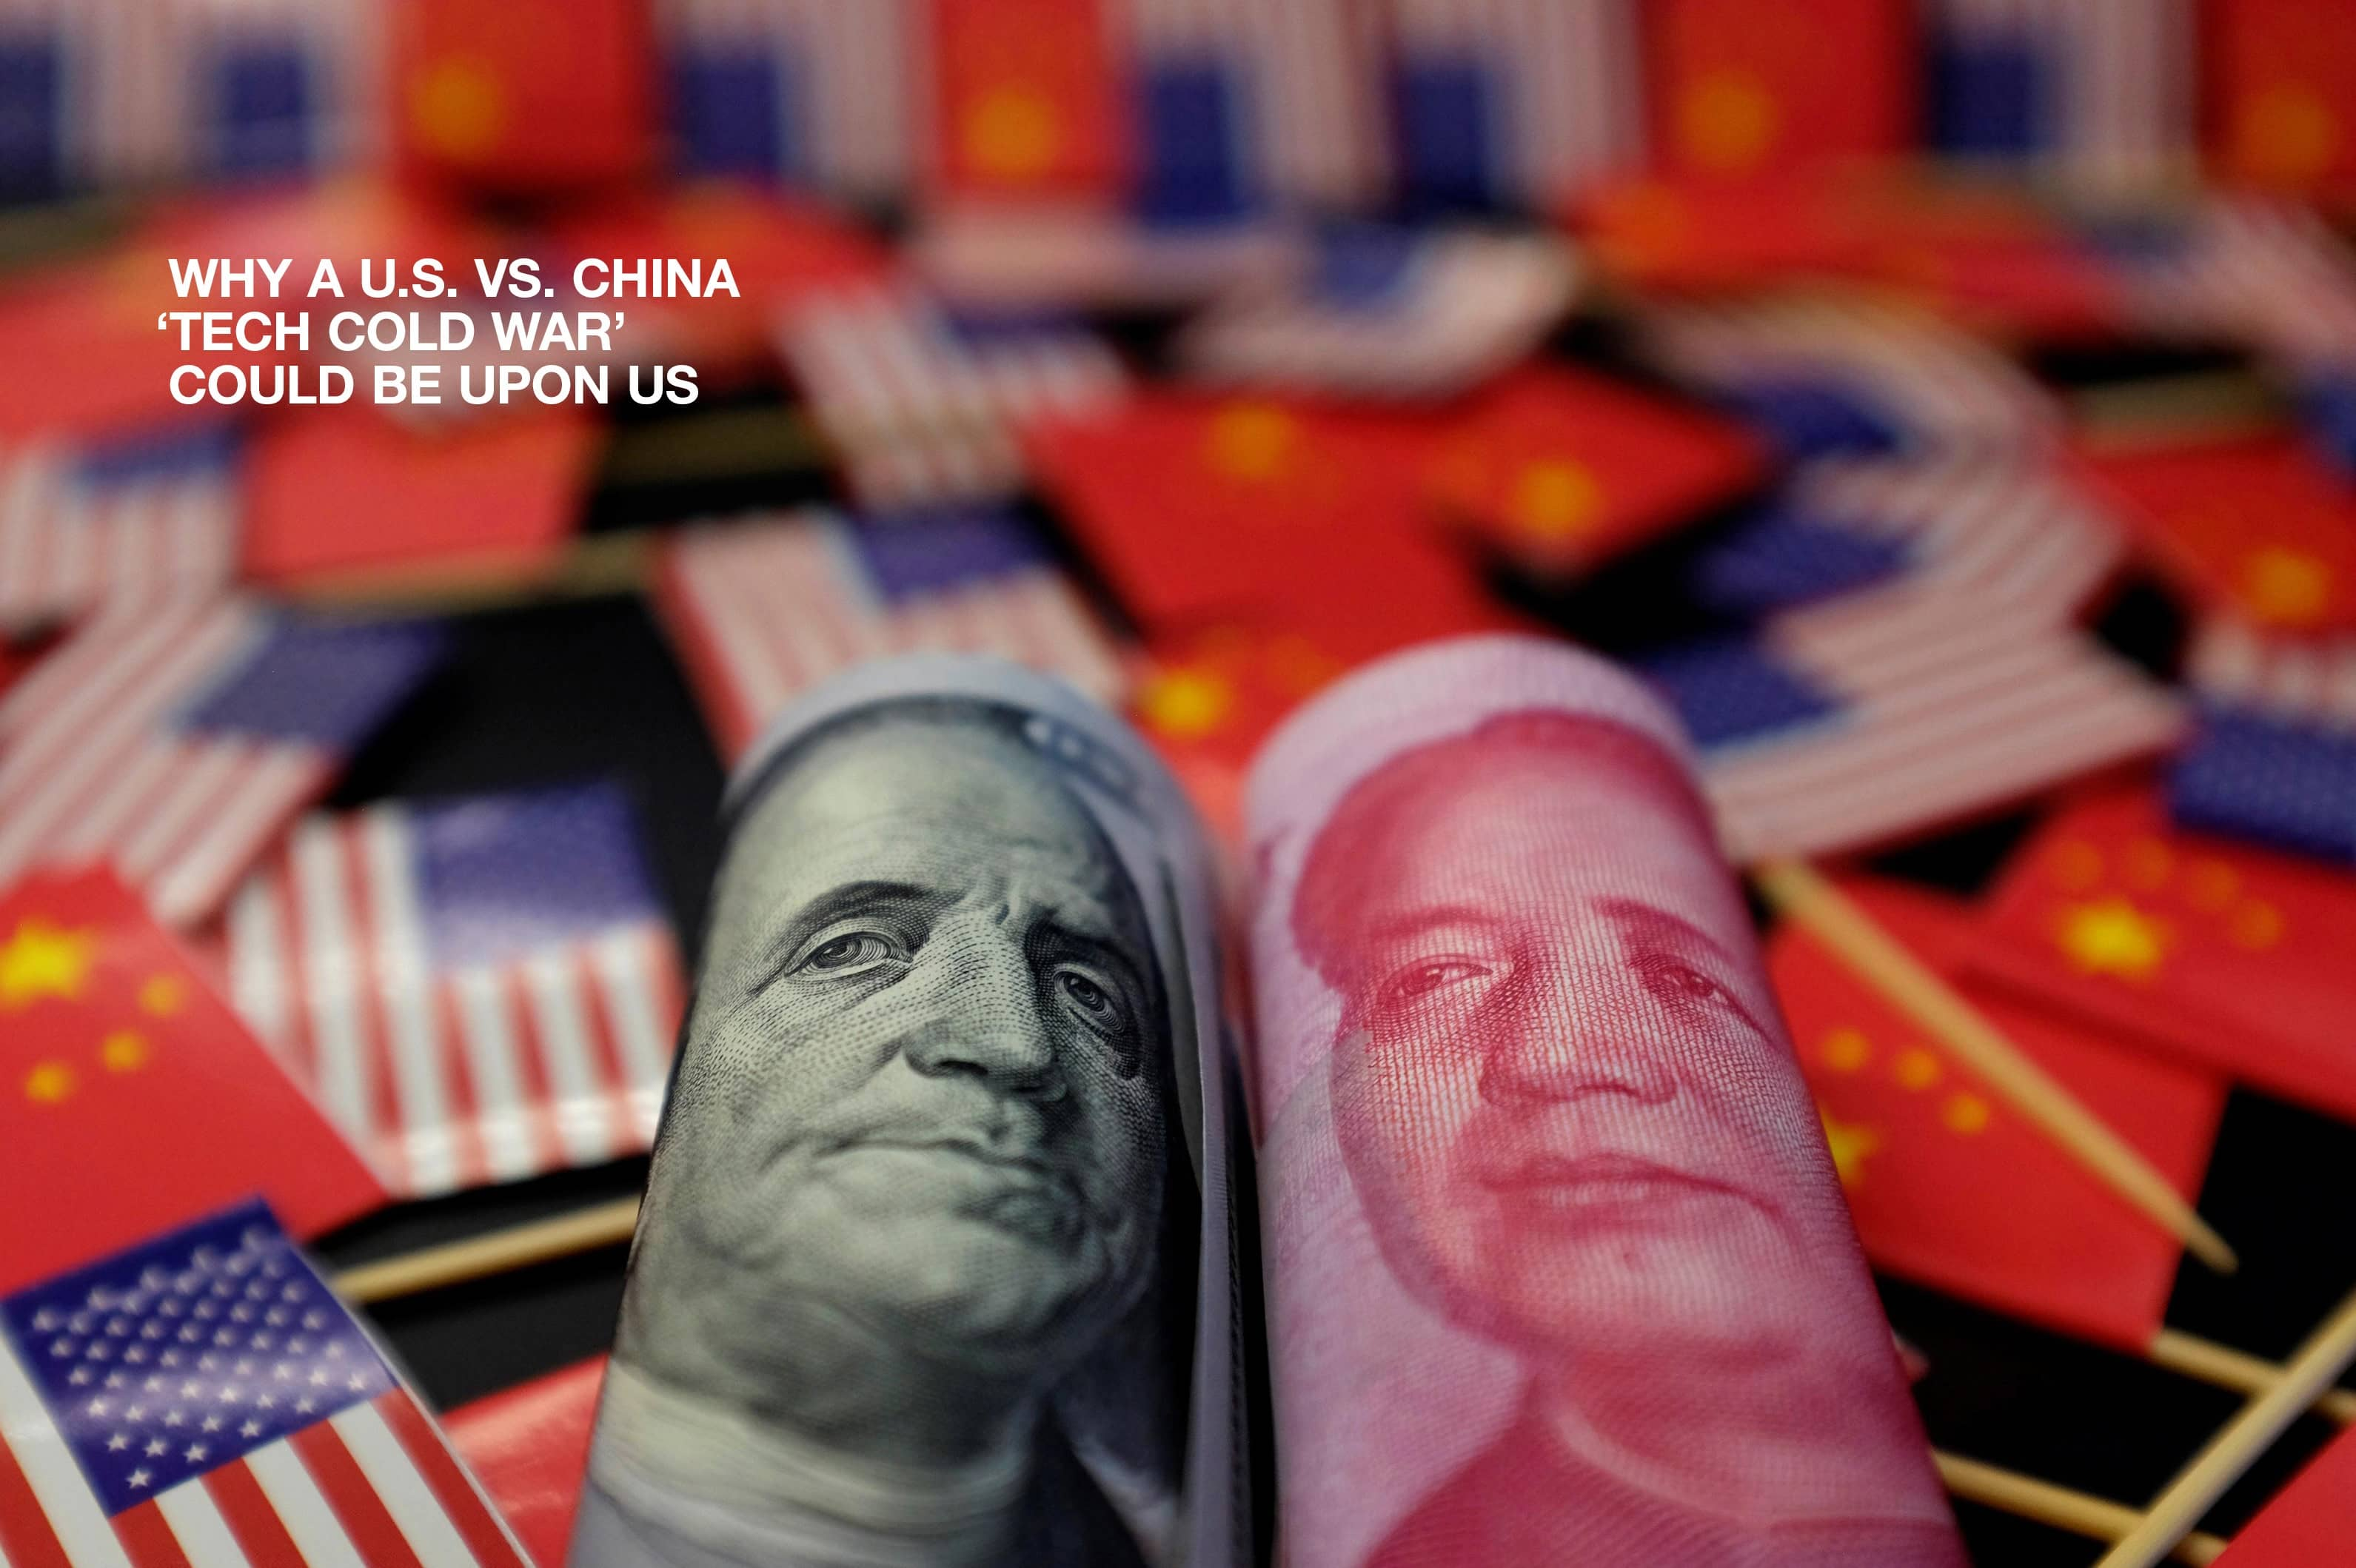 Why A U.S VS. China 'Tech Cold War' Could Be Upon Us